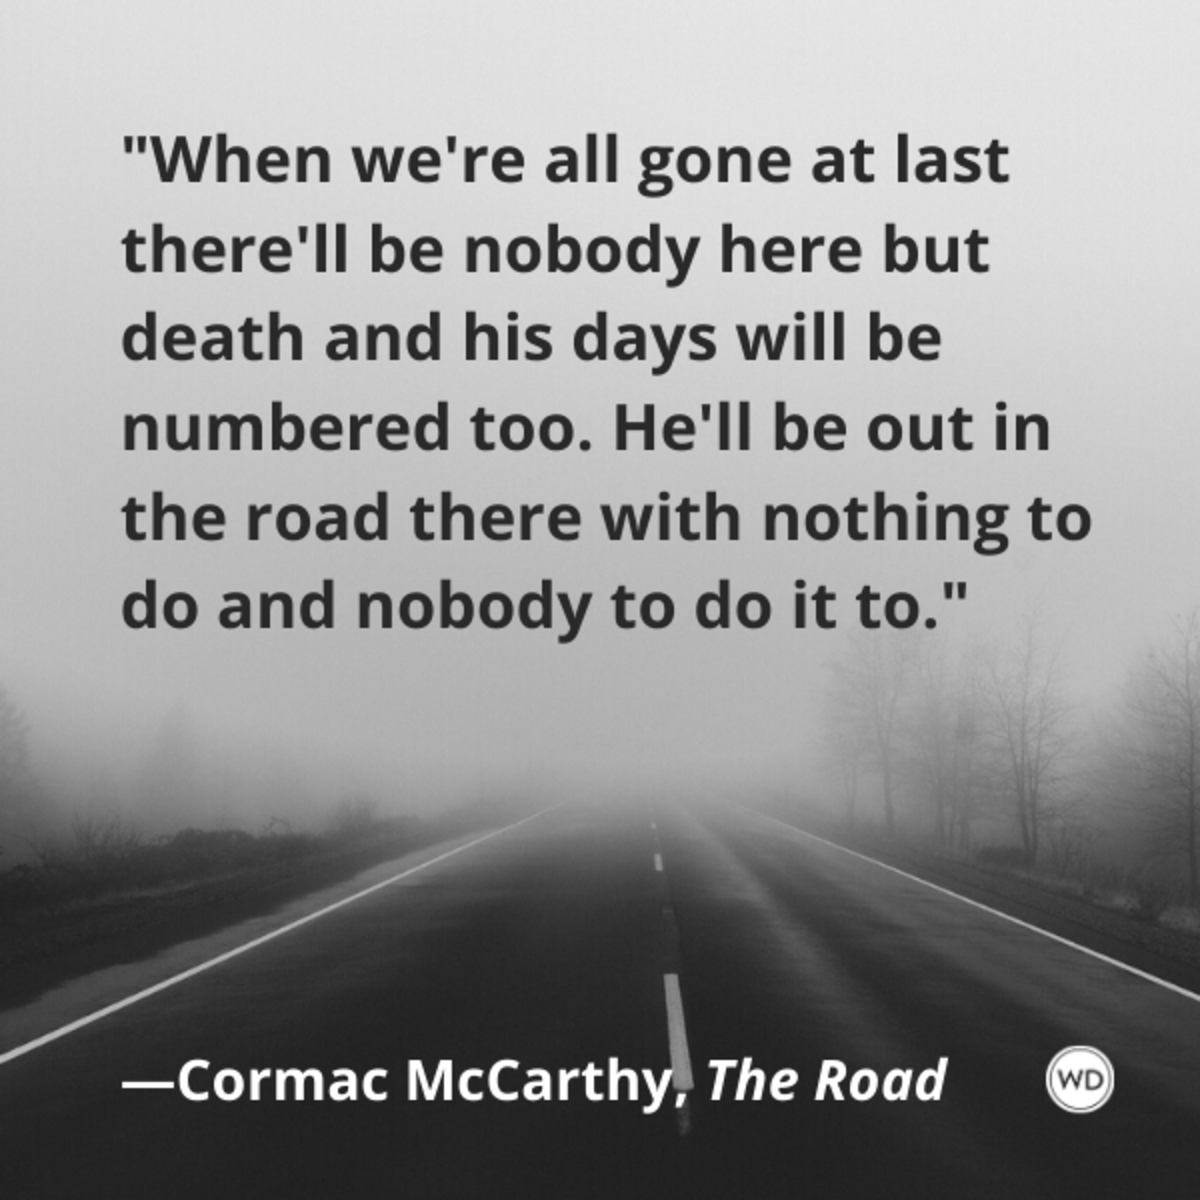 cormac_mccarthy_the_road_quotes_when_were_all_gone_at_last_therell_be_nobody_here_but_death_and_his_days_will_be_numbered_too